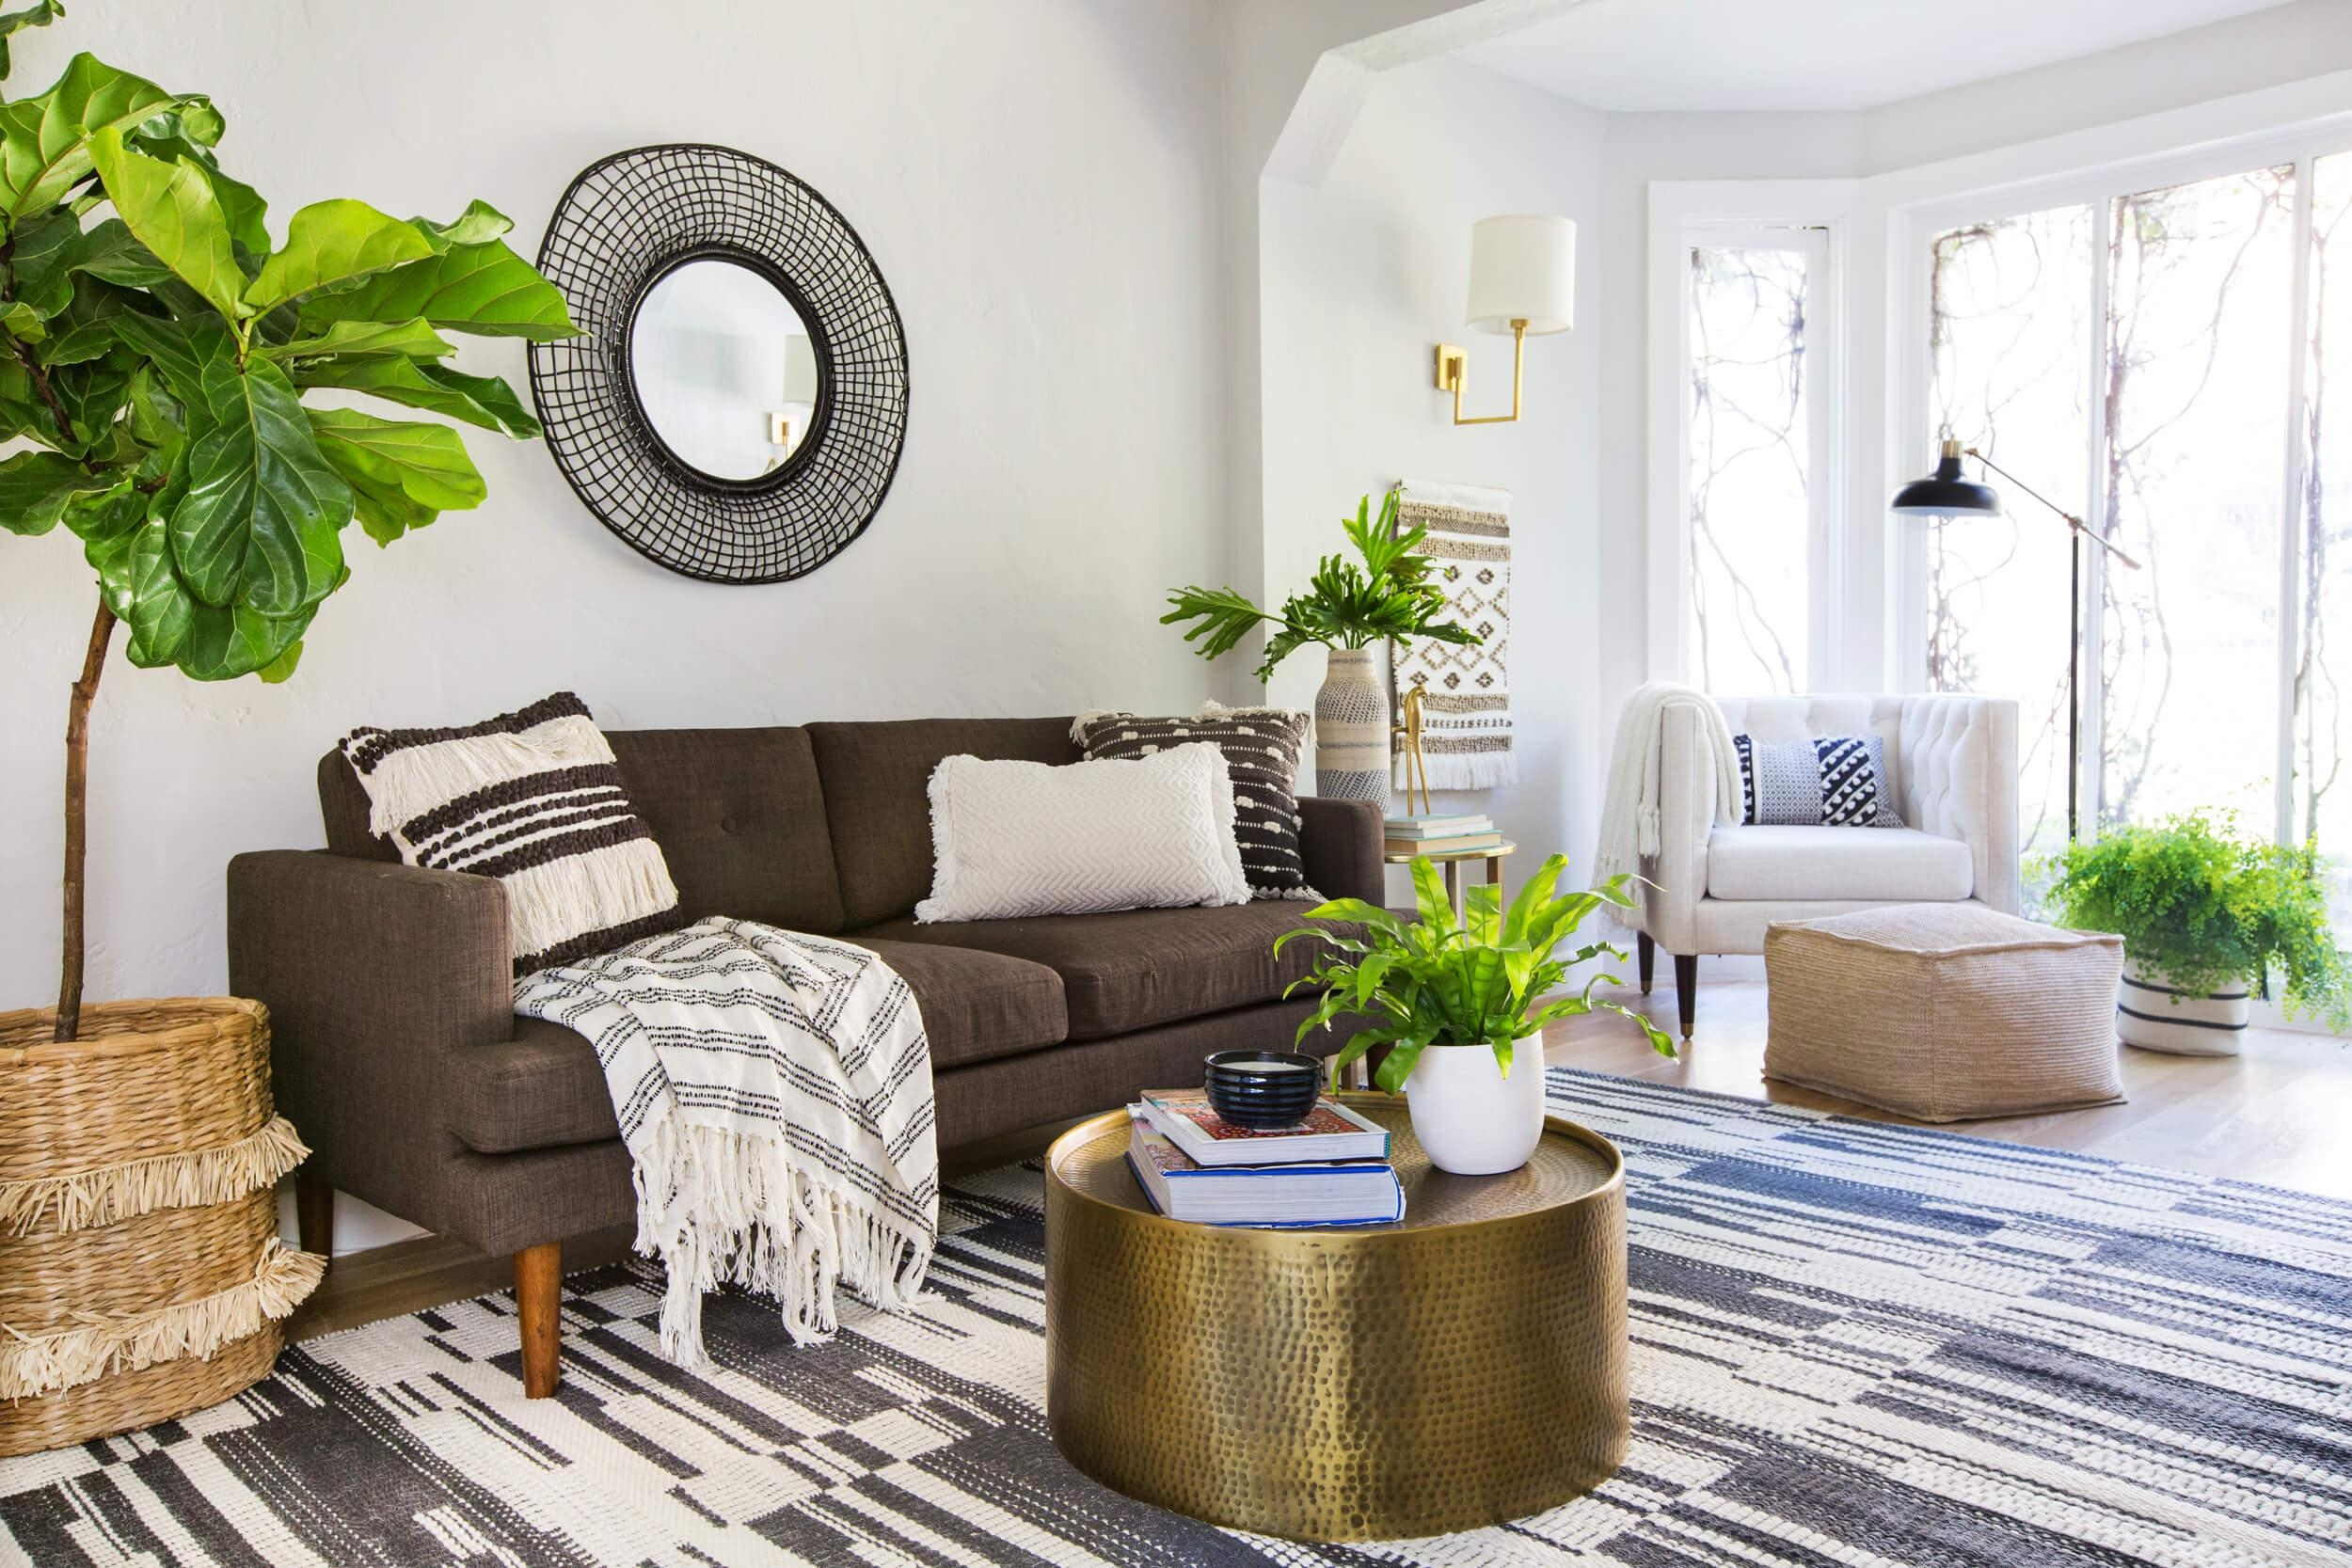 88 Affordable And Budget Friendly Sofas Under $1000 - Emily Henderson inside Emily Sofas